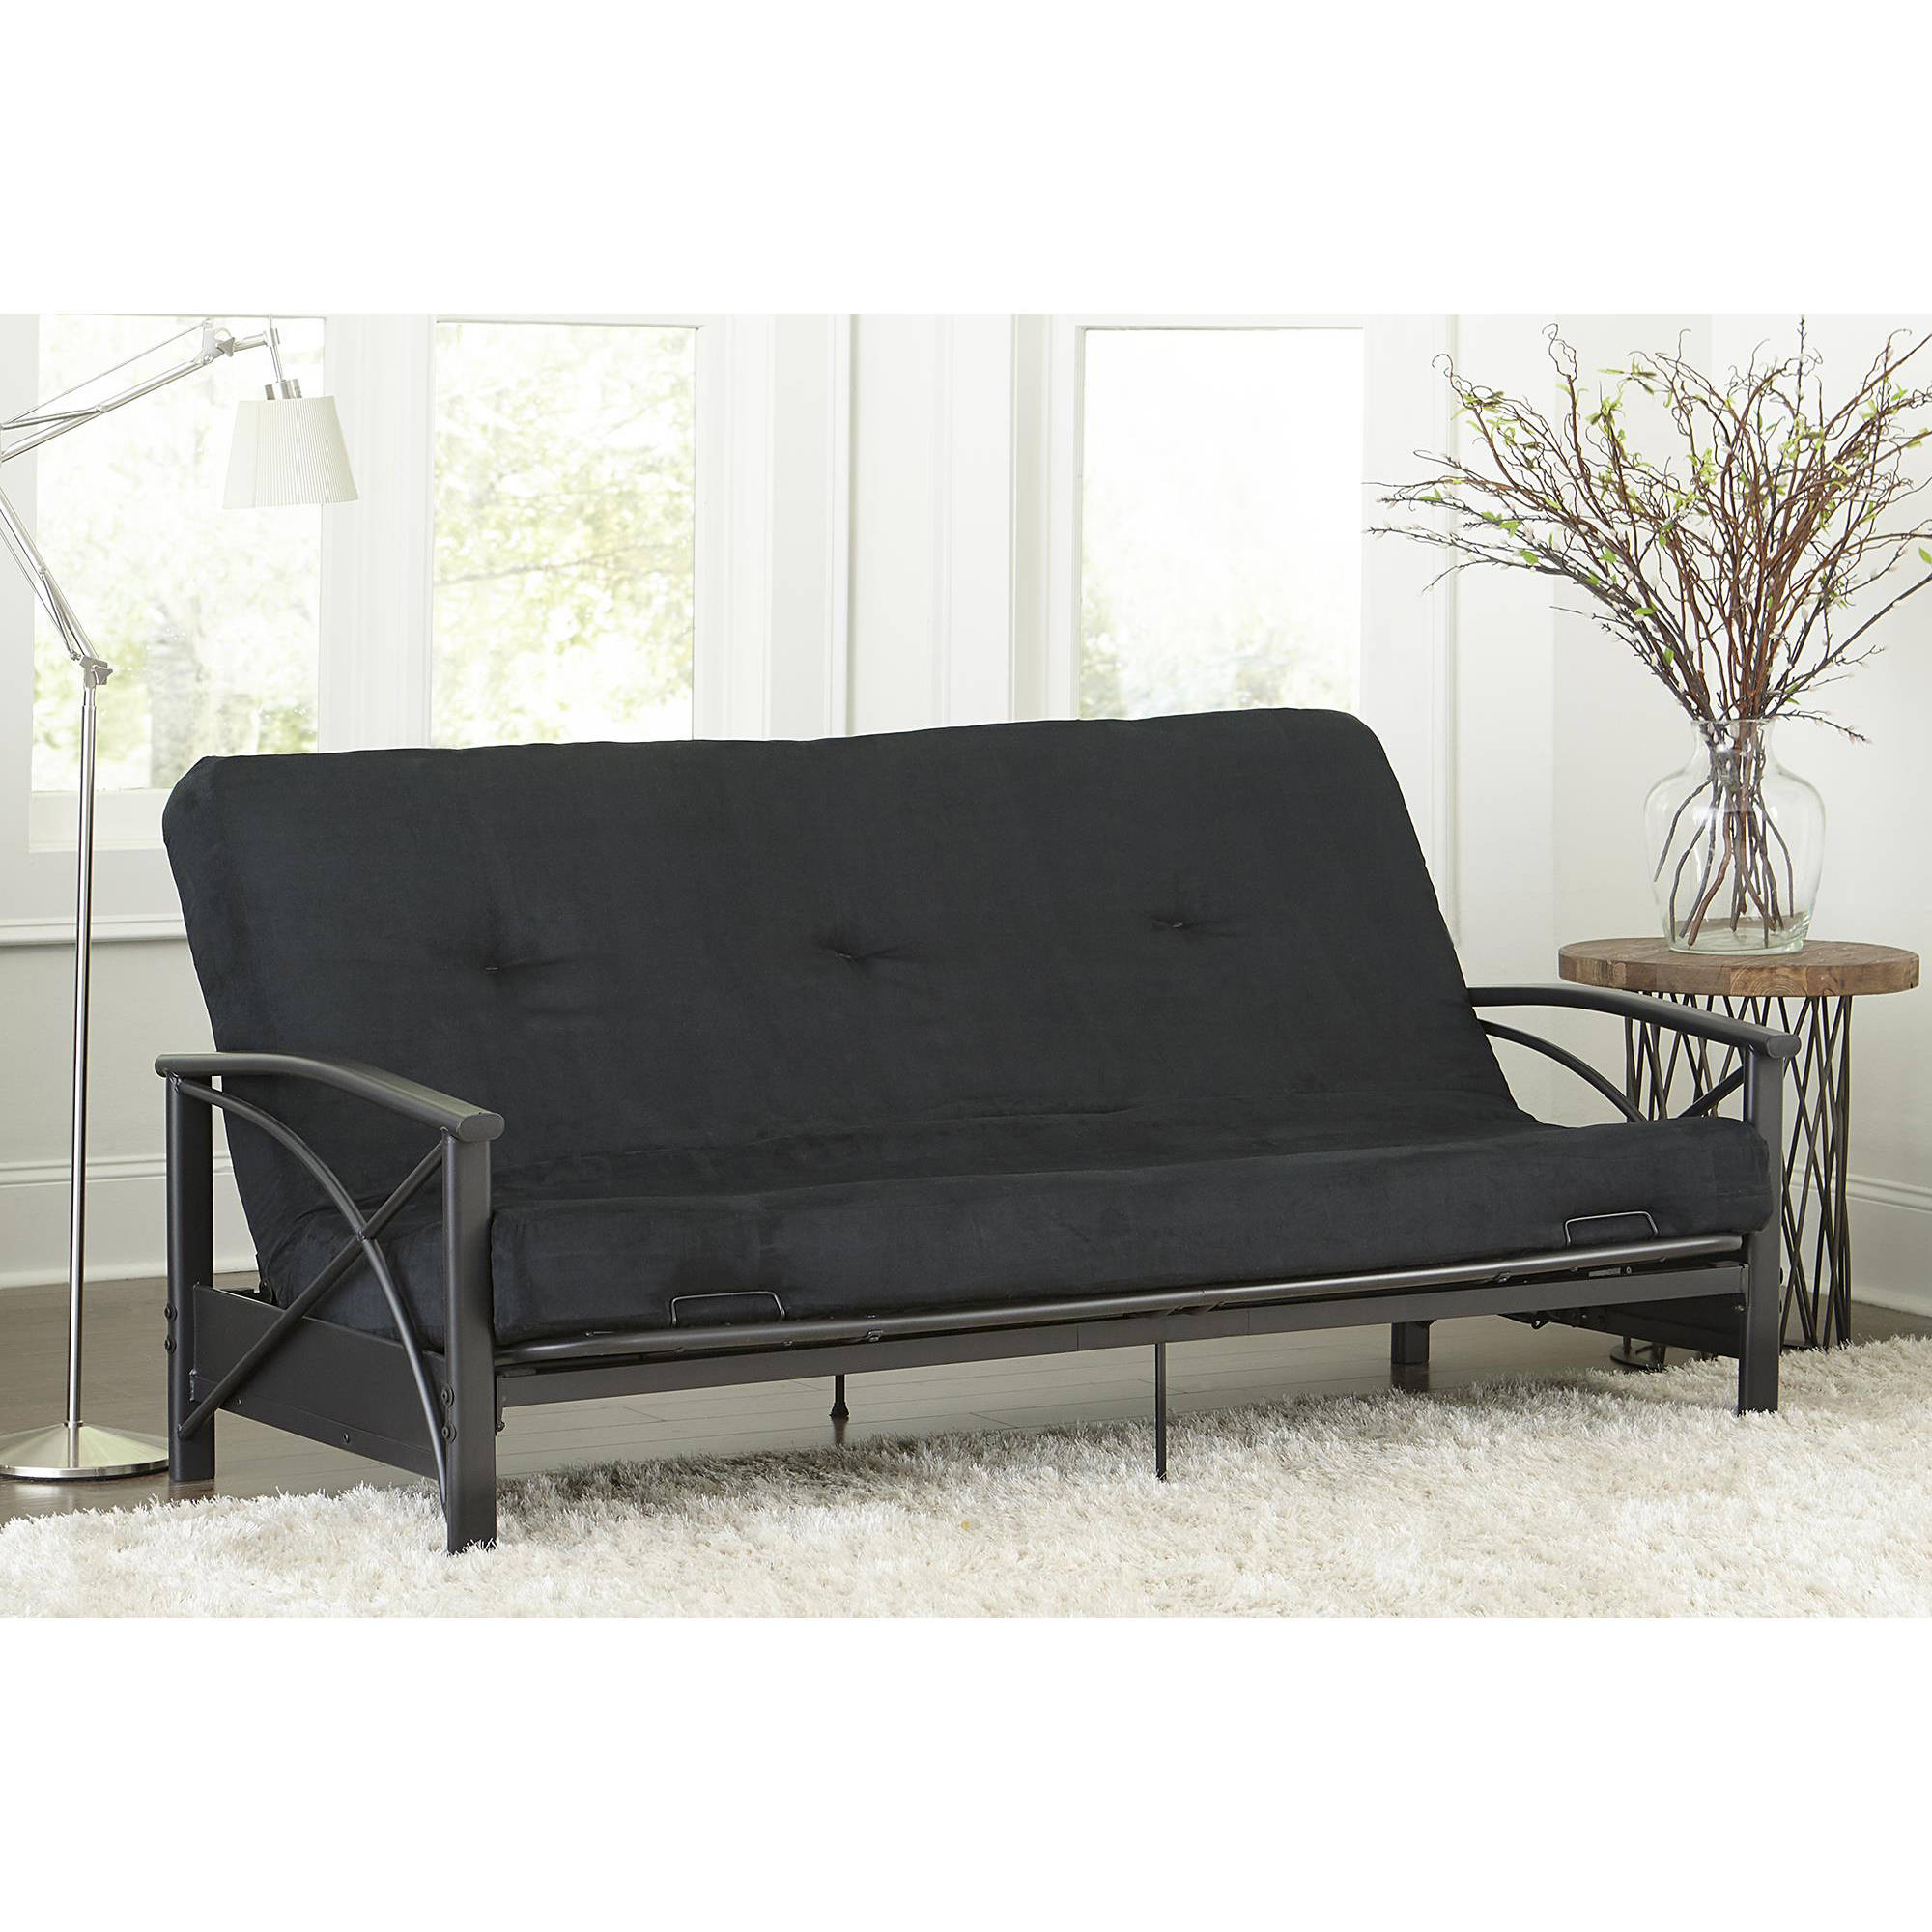 Black Metal Futon With 6 Mattress Full Size Convertible Sleeper Monaco Design